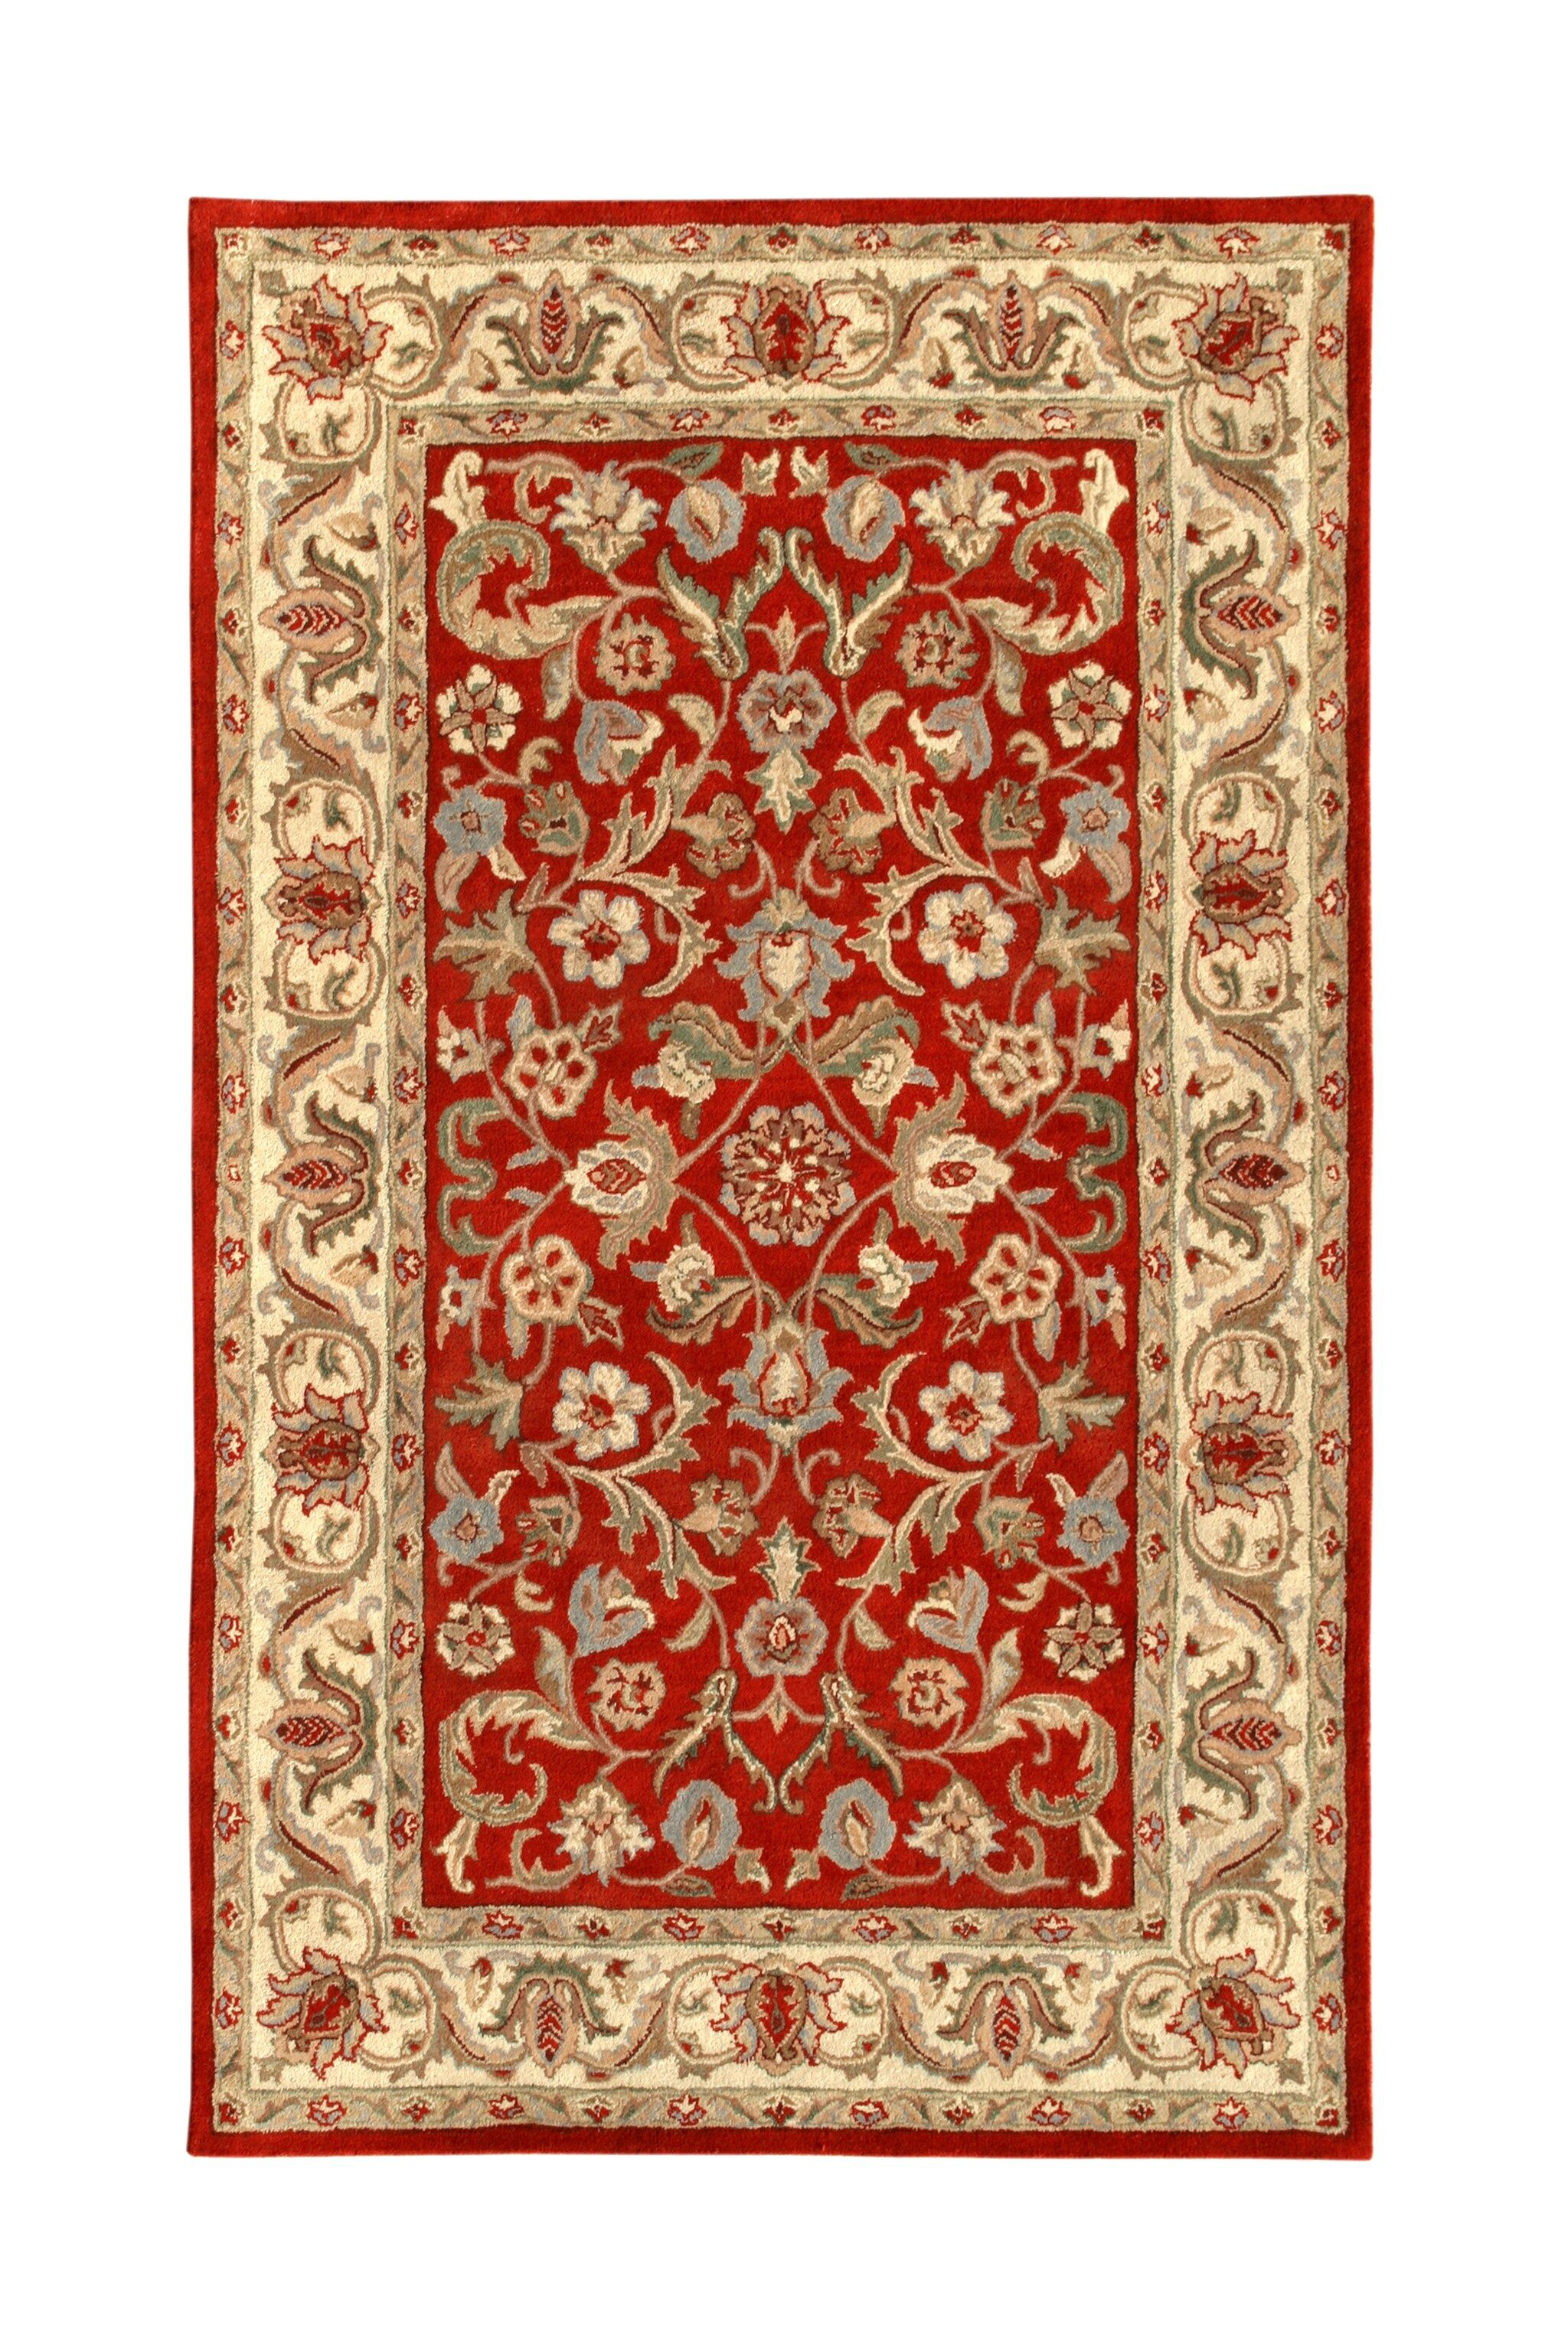 Harmony Red/Beige Floral Area Rug Rug Size: 8' x 11'